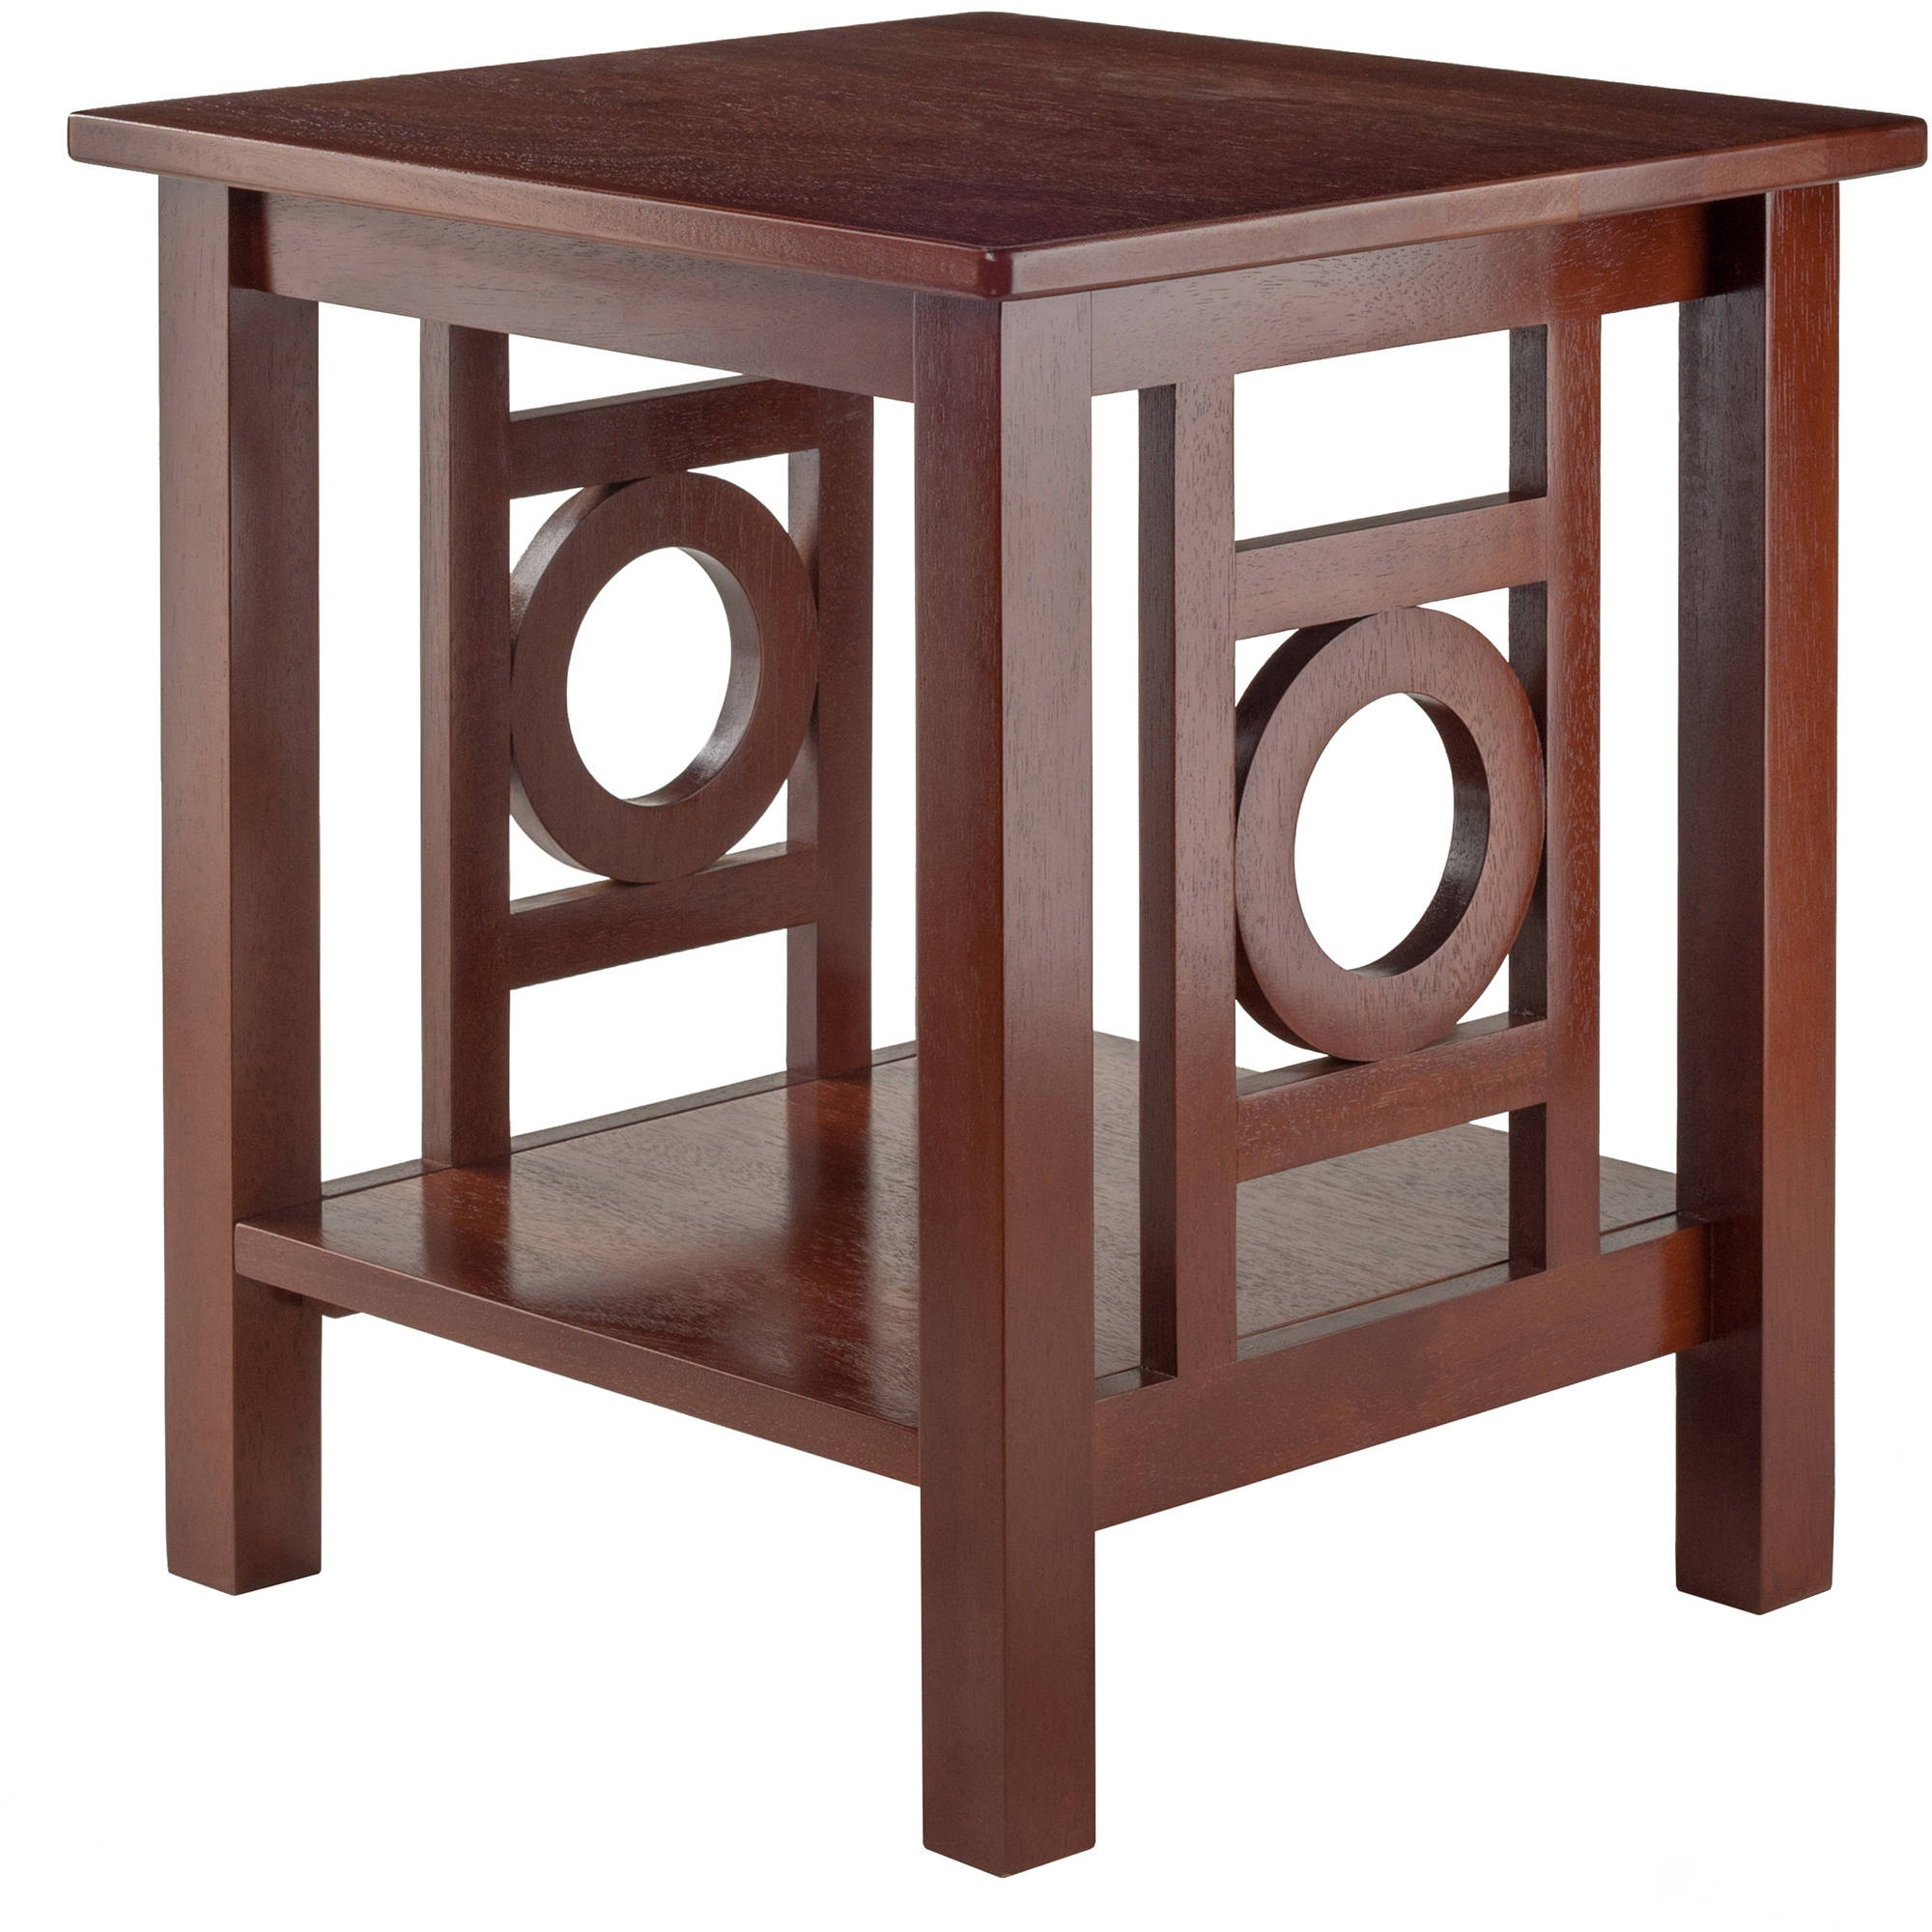 Winsome Wood Ollie Accent End Table, Walnut Finish by Winsome Trading Inc